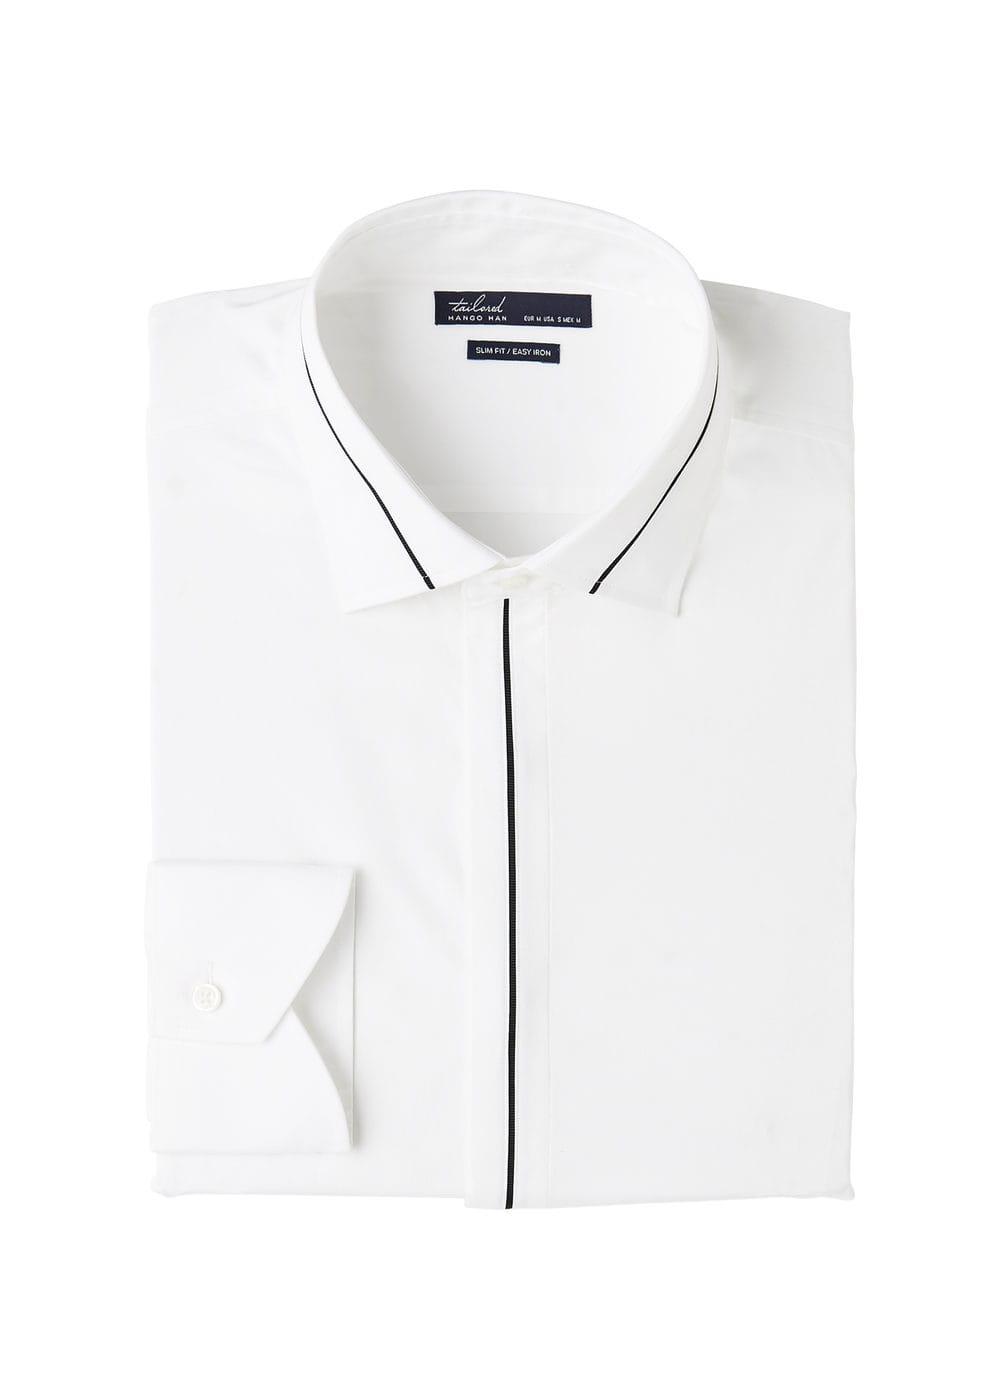 Chemise tailored slim-fit coton stretch